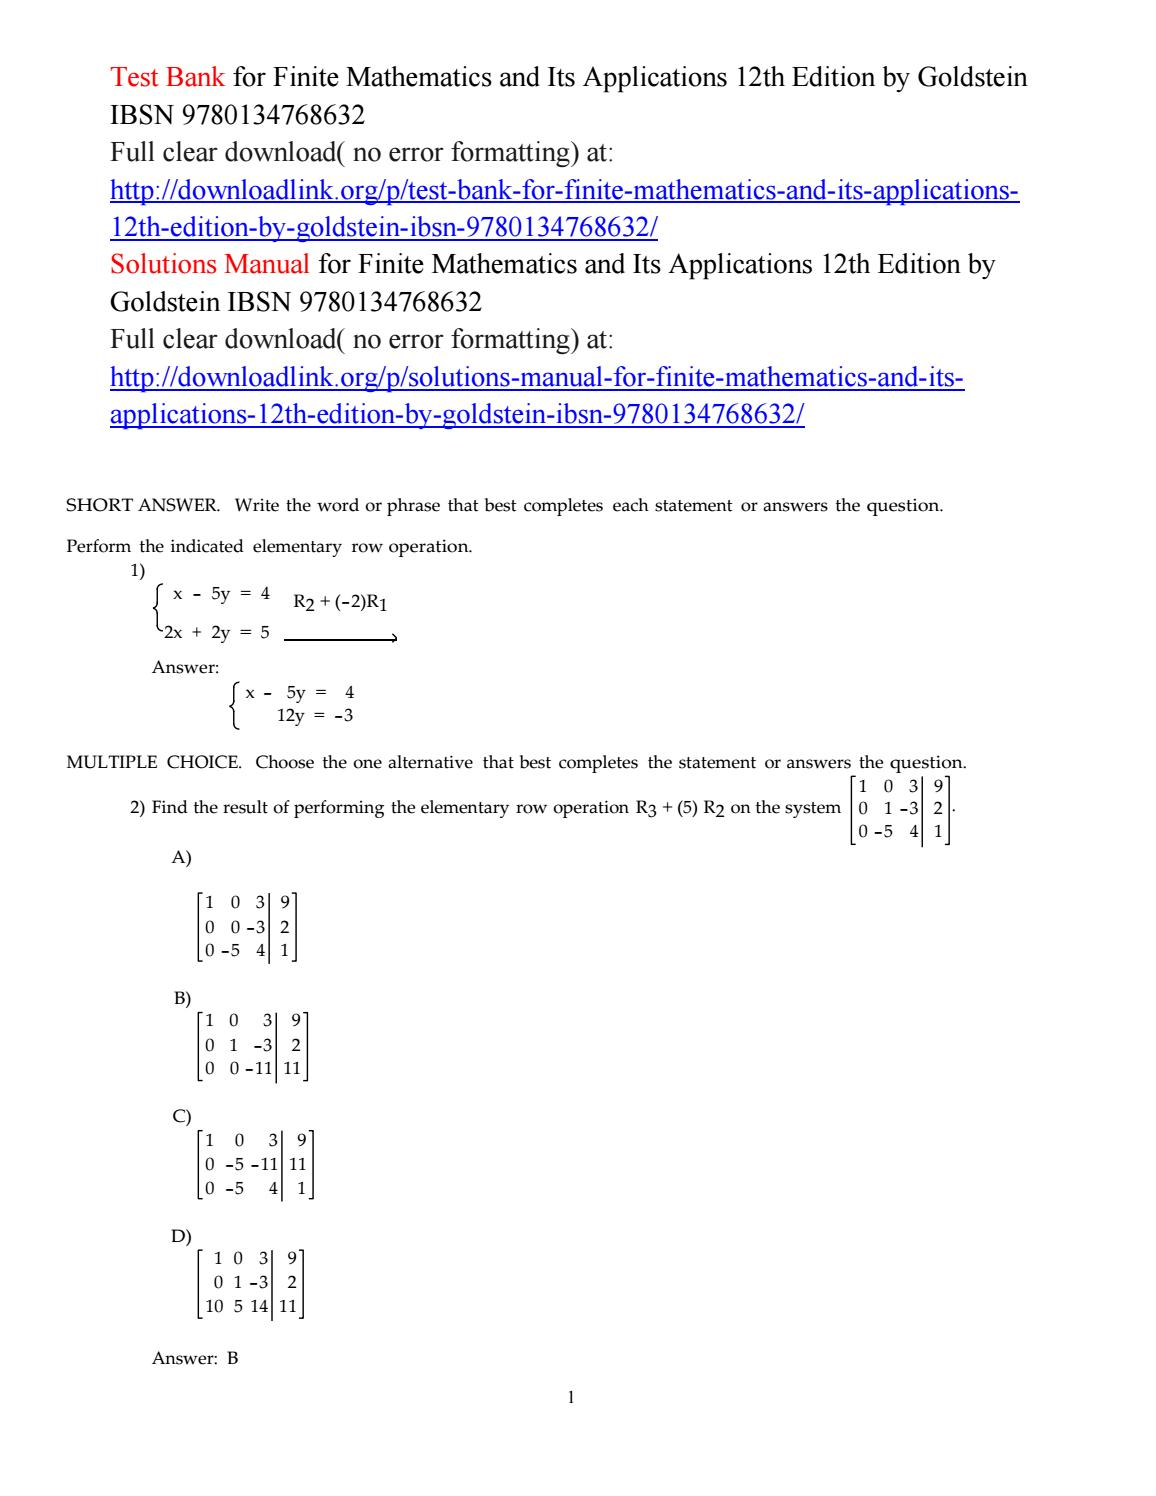 Test Bank For Finite Mathematics And Its Applications 12th